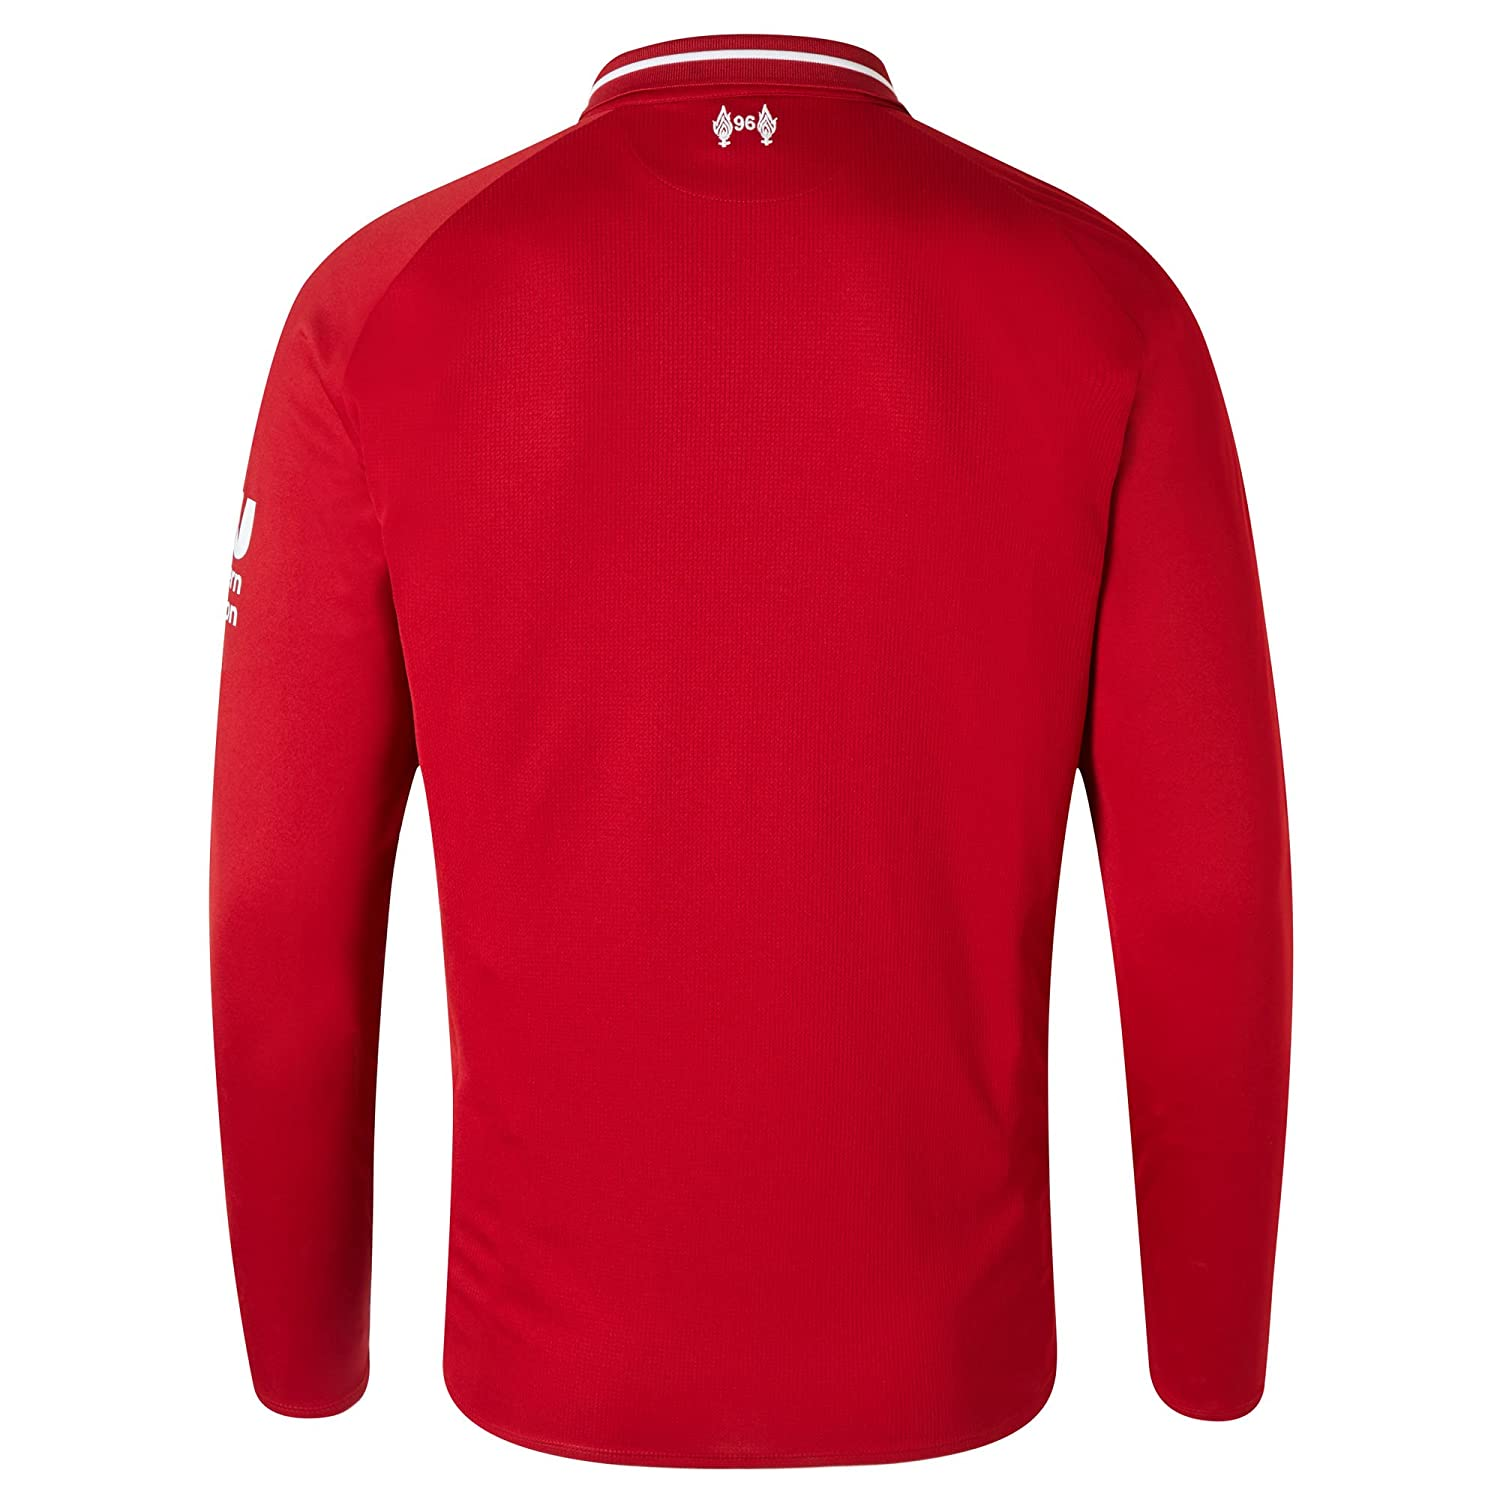 Liverpool FC 18 19 Home L S Football Shirt - Red  Amazon.co.uk  Clothing 62e14c474